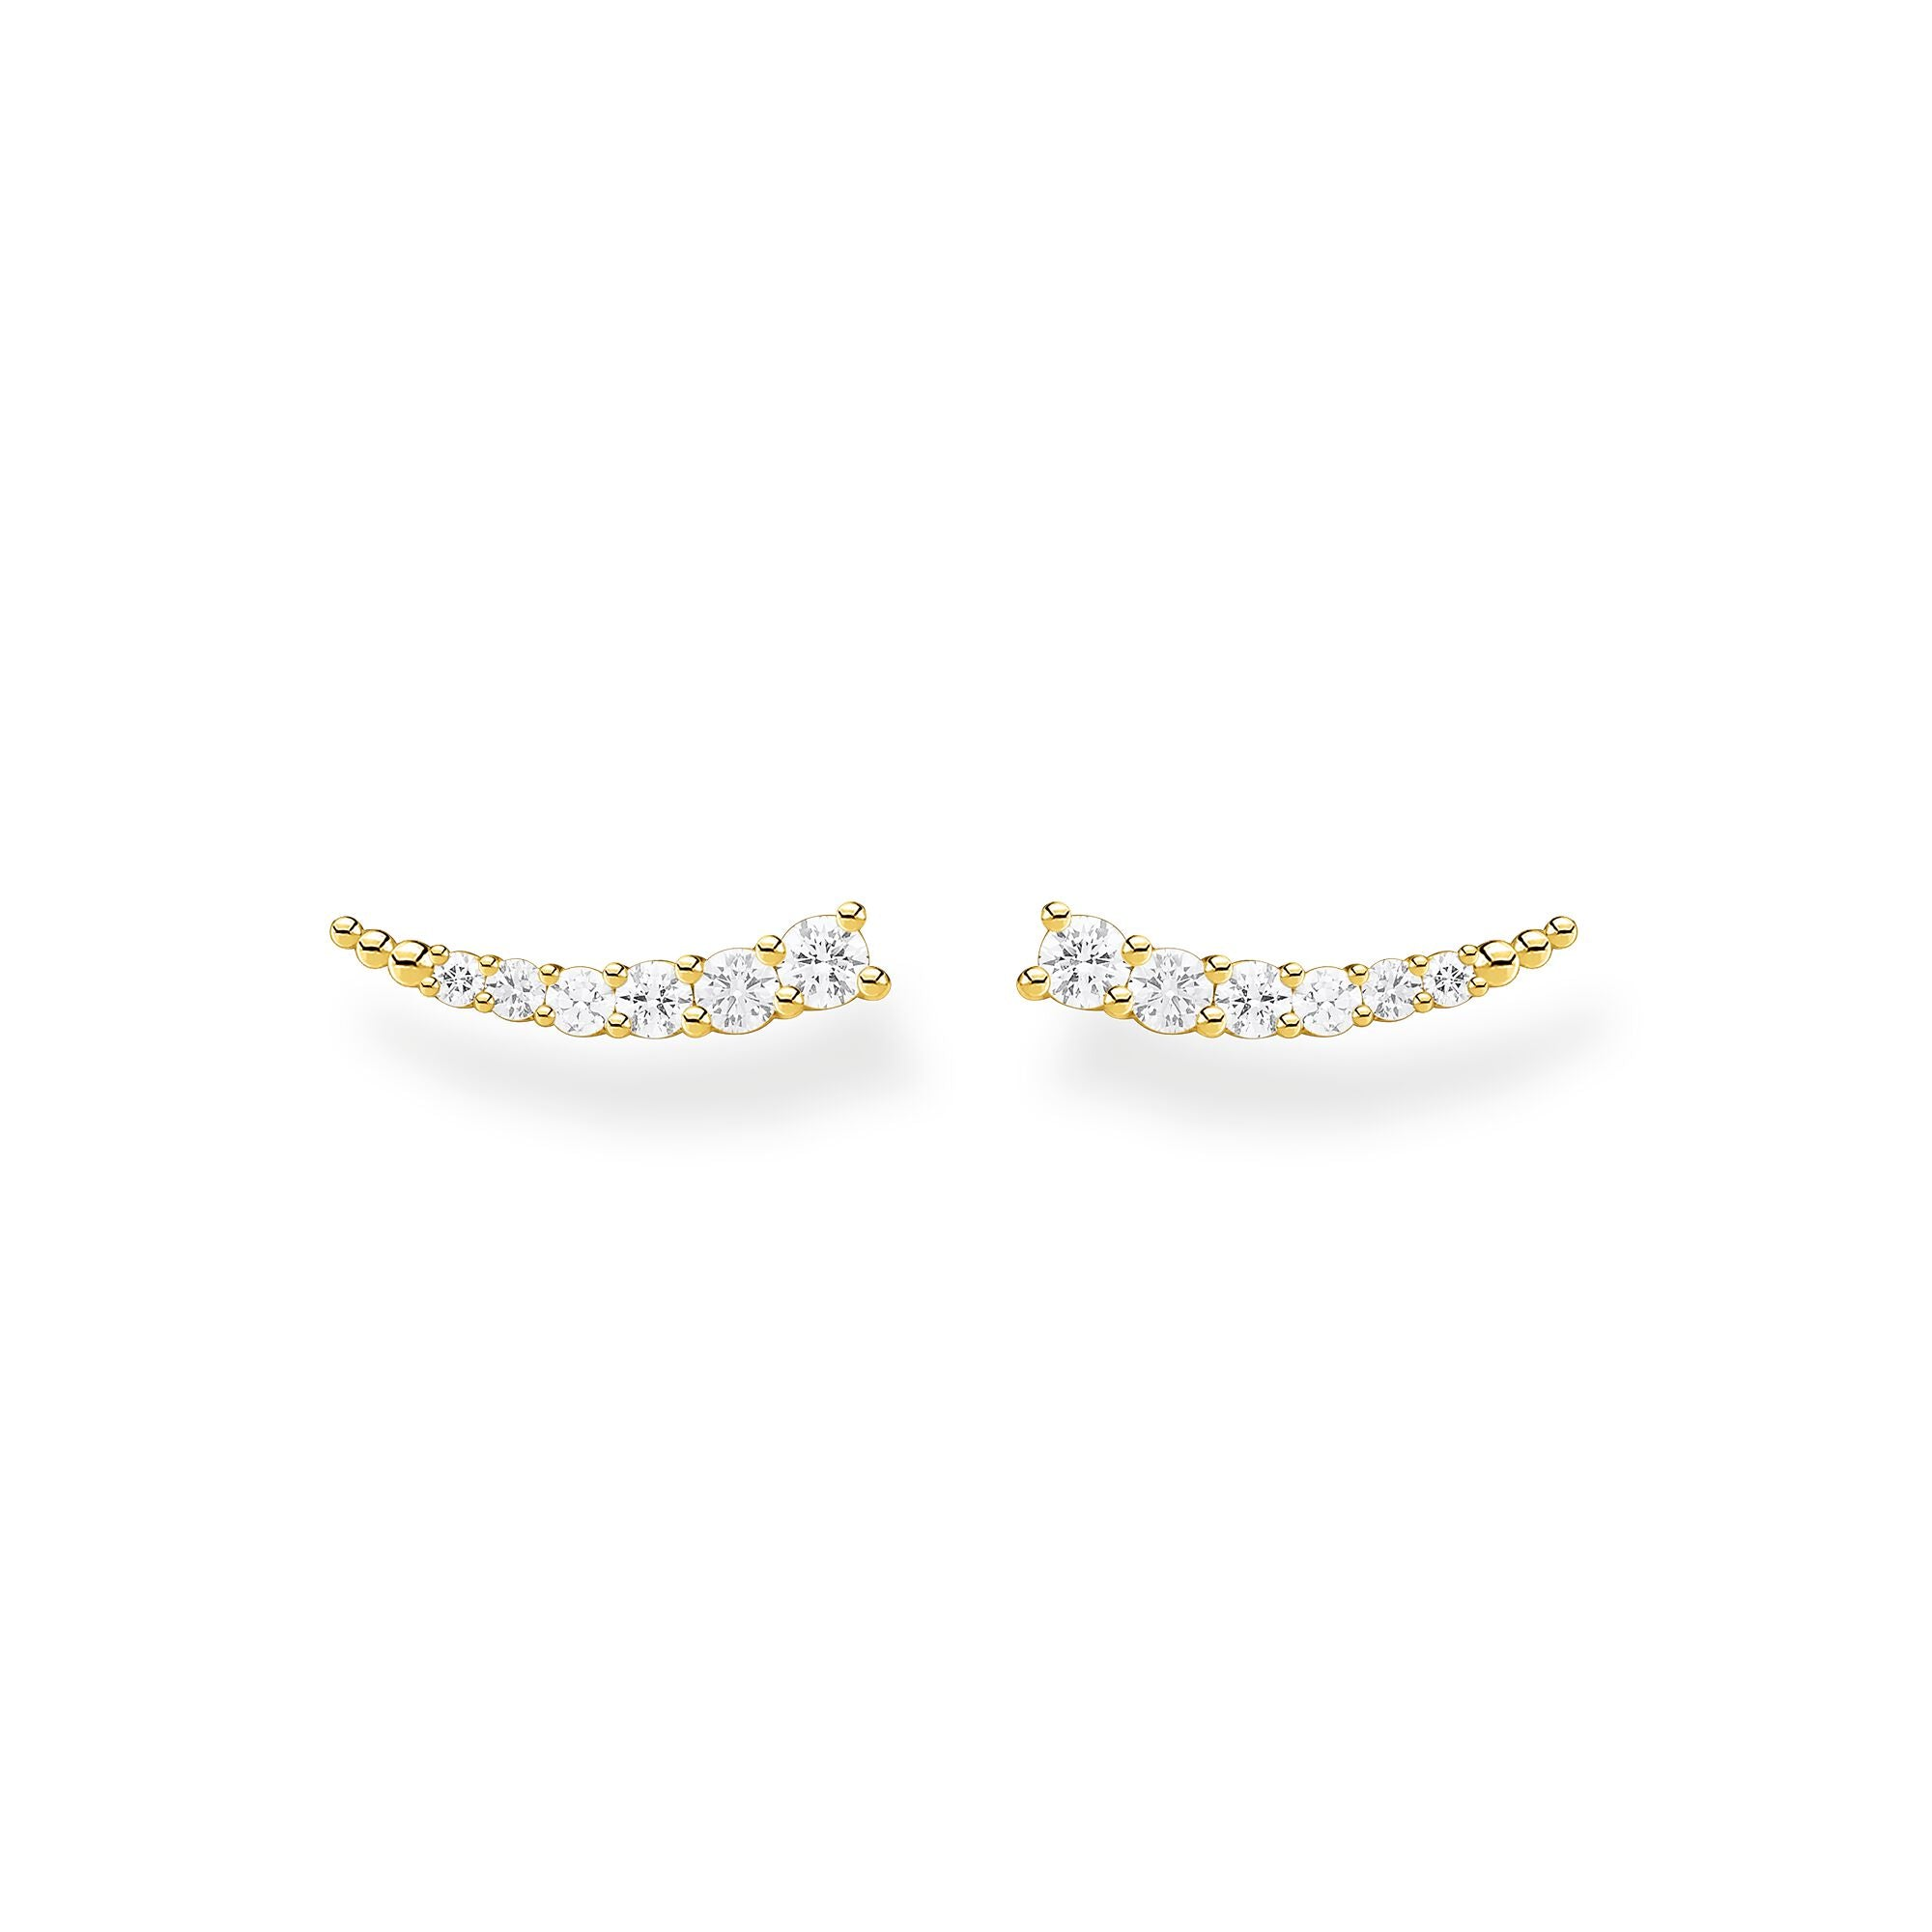 Thomas Sabo, Sterling Silver, Yellow Gold Plated, Cubic Zirconia, Multi Stone, Curve, Earring Climbers, Ottawa